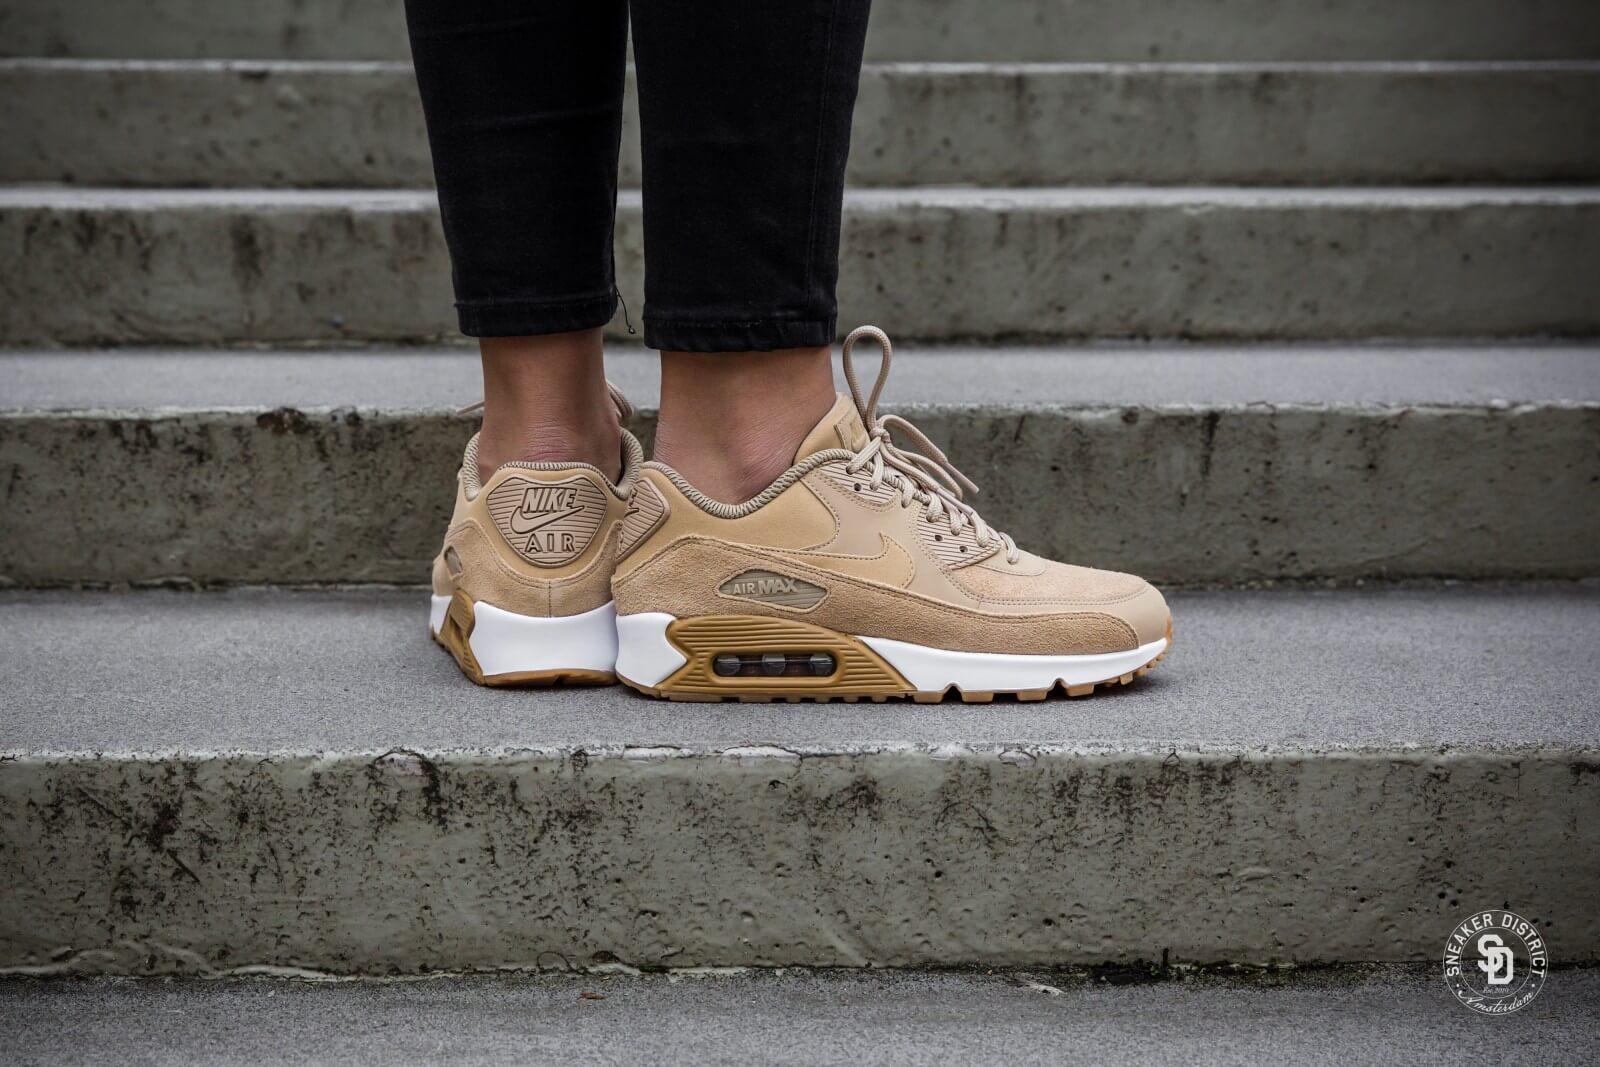 Look - Women air max 90 Nike pictures video